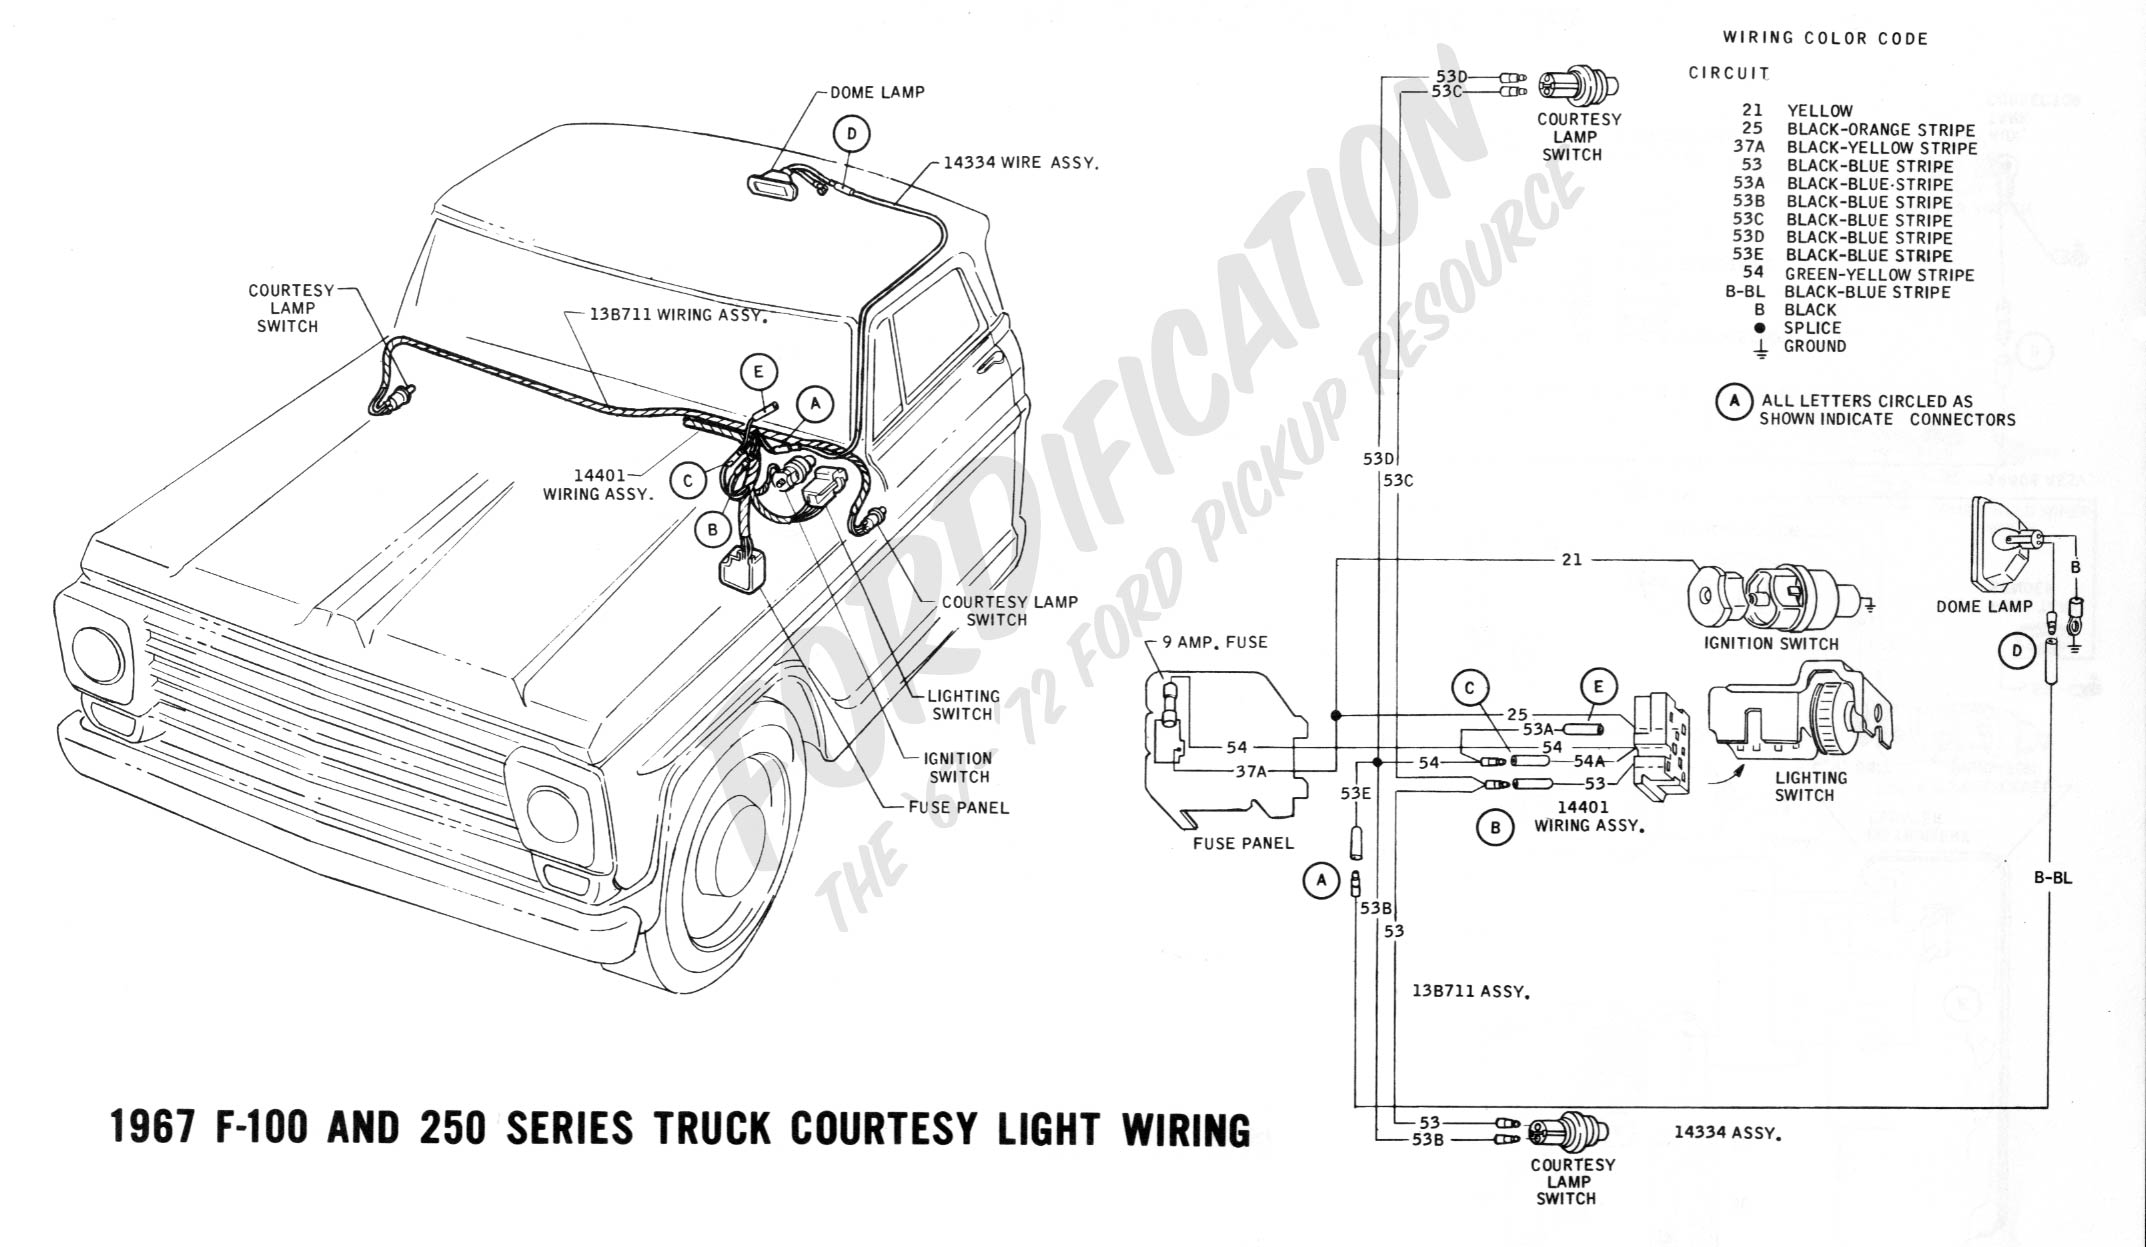 1967 Ford F100 Ignition Switch Wiring Diagram Free 1957 1979 F 150 Wiper 38 Mustang